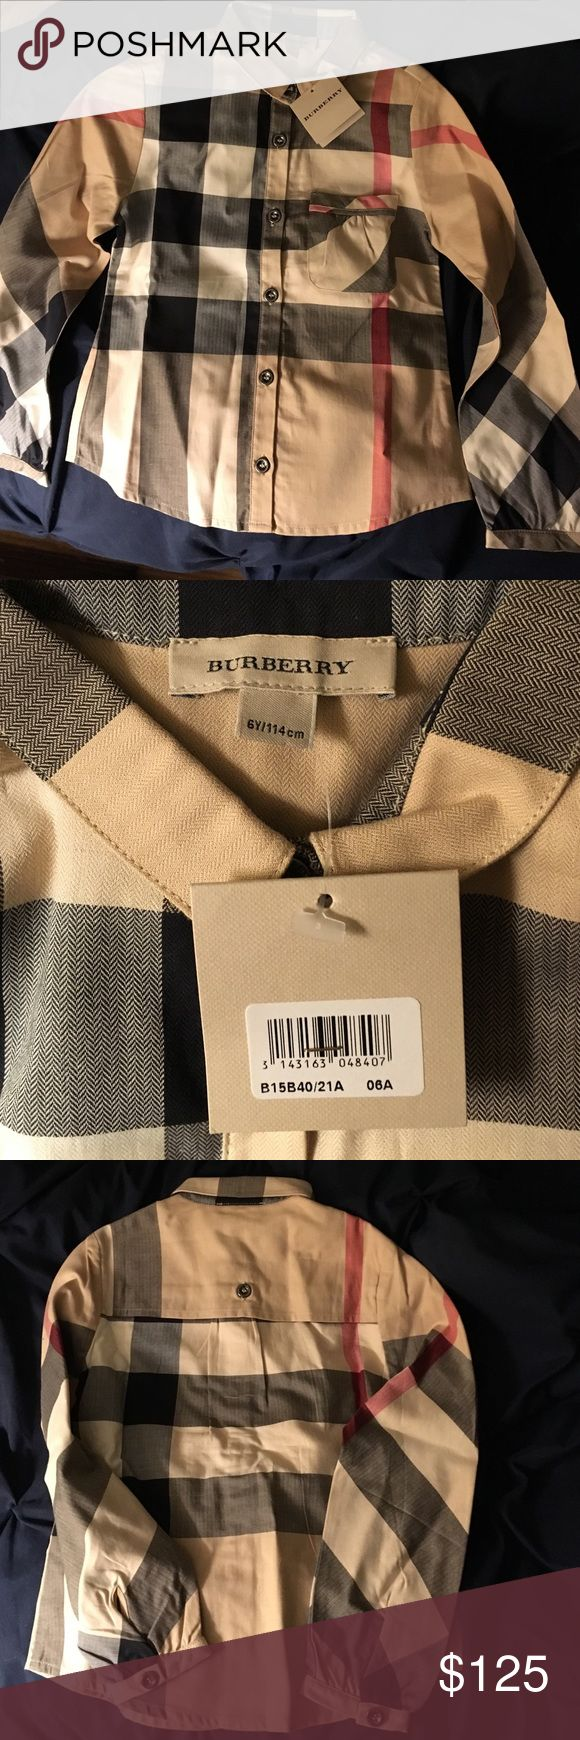 BURBERRY Youth size 6  Button down with tags New with tags! Burberry youth size 6 (size 6Y according to tags) button down with classic print Burberry Shirts & Tops Button Down Shirts